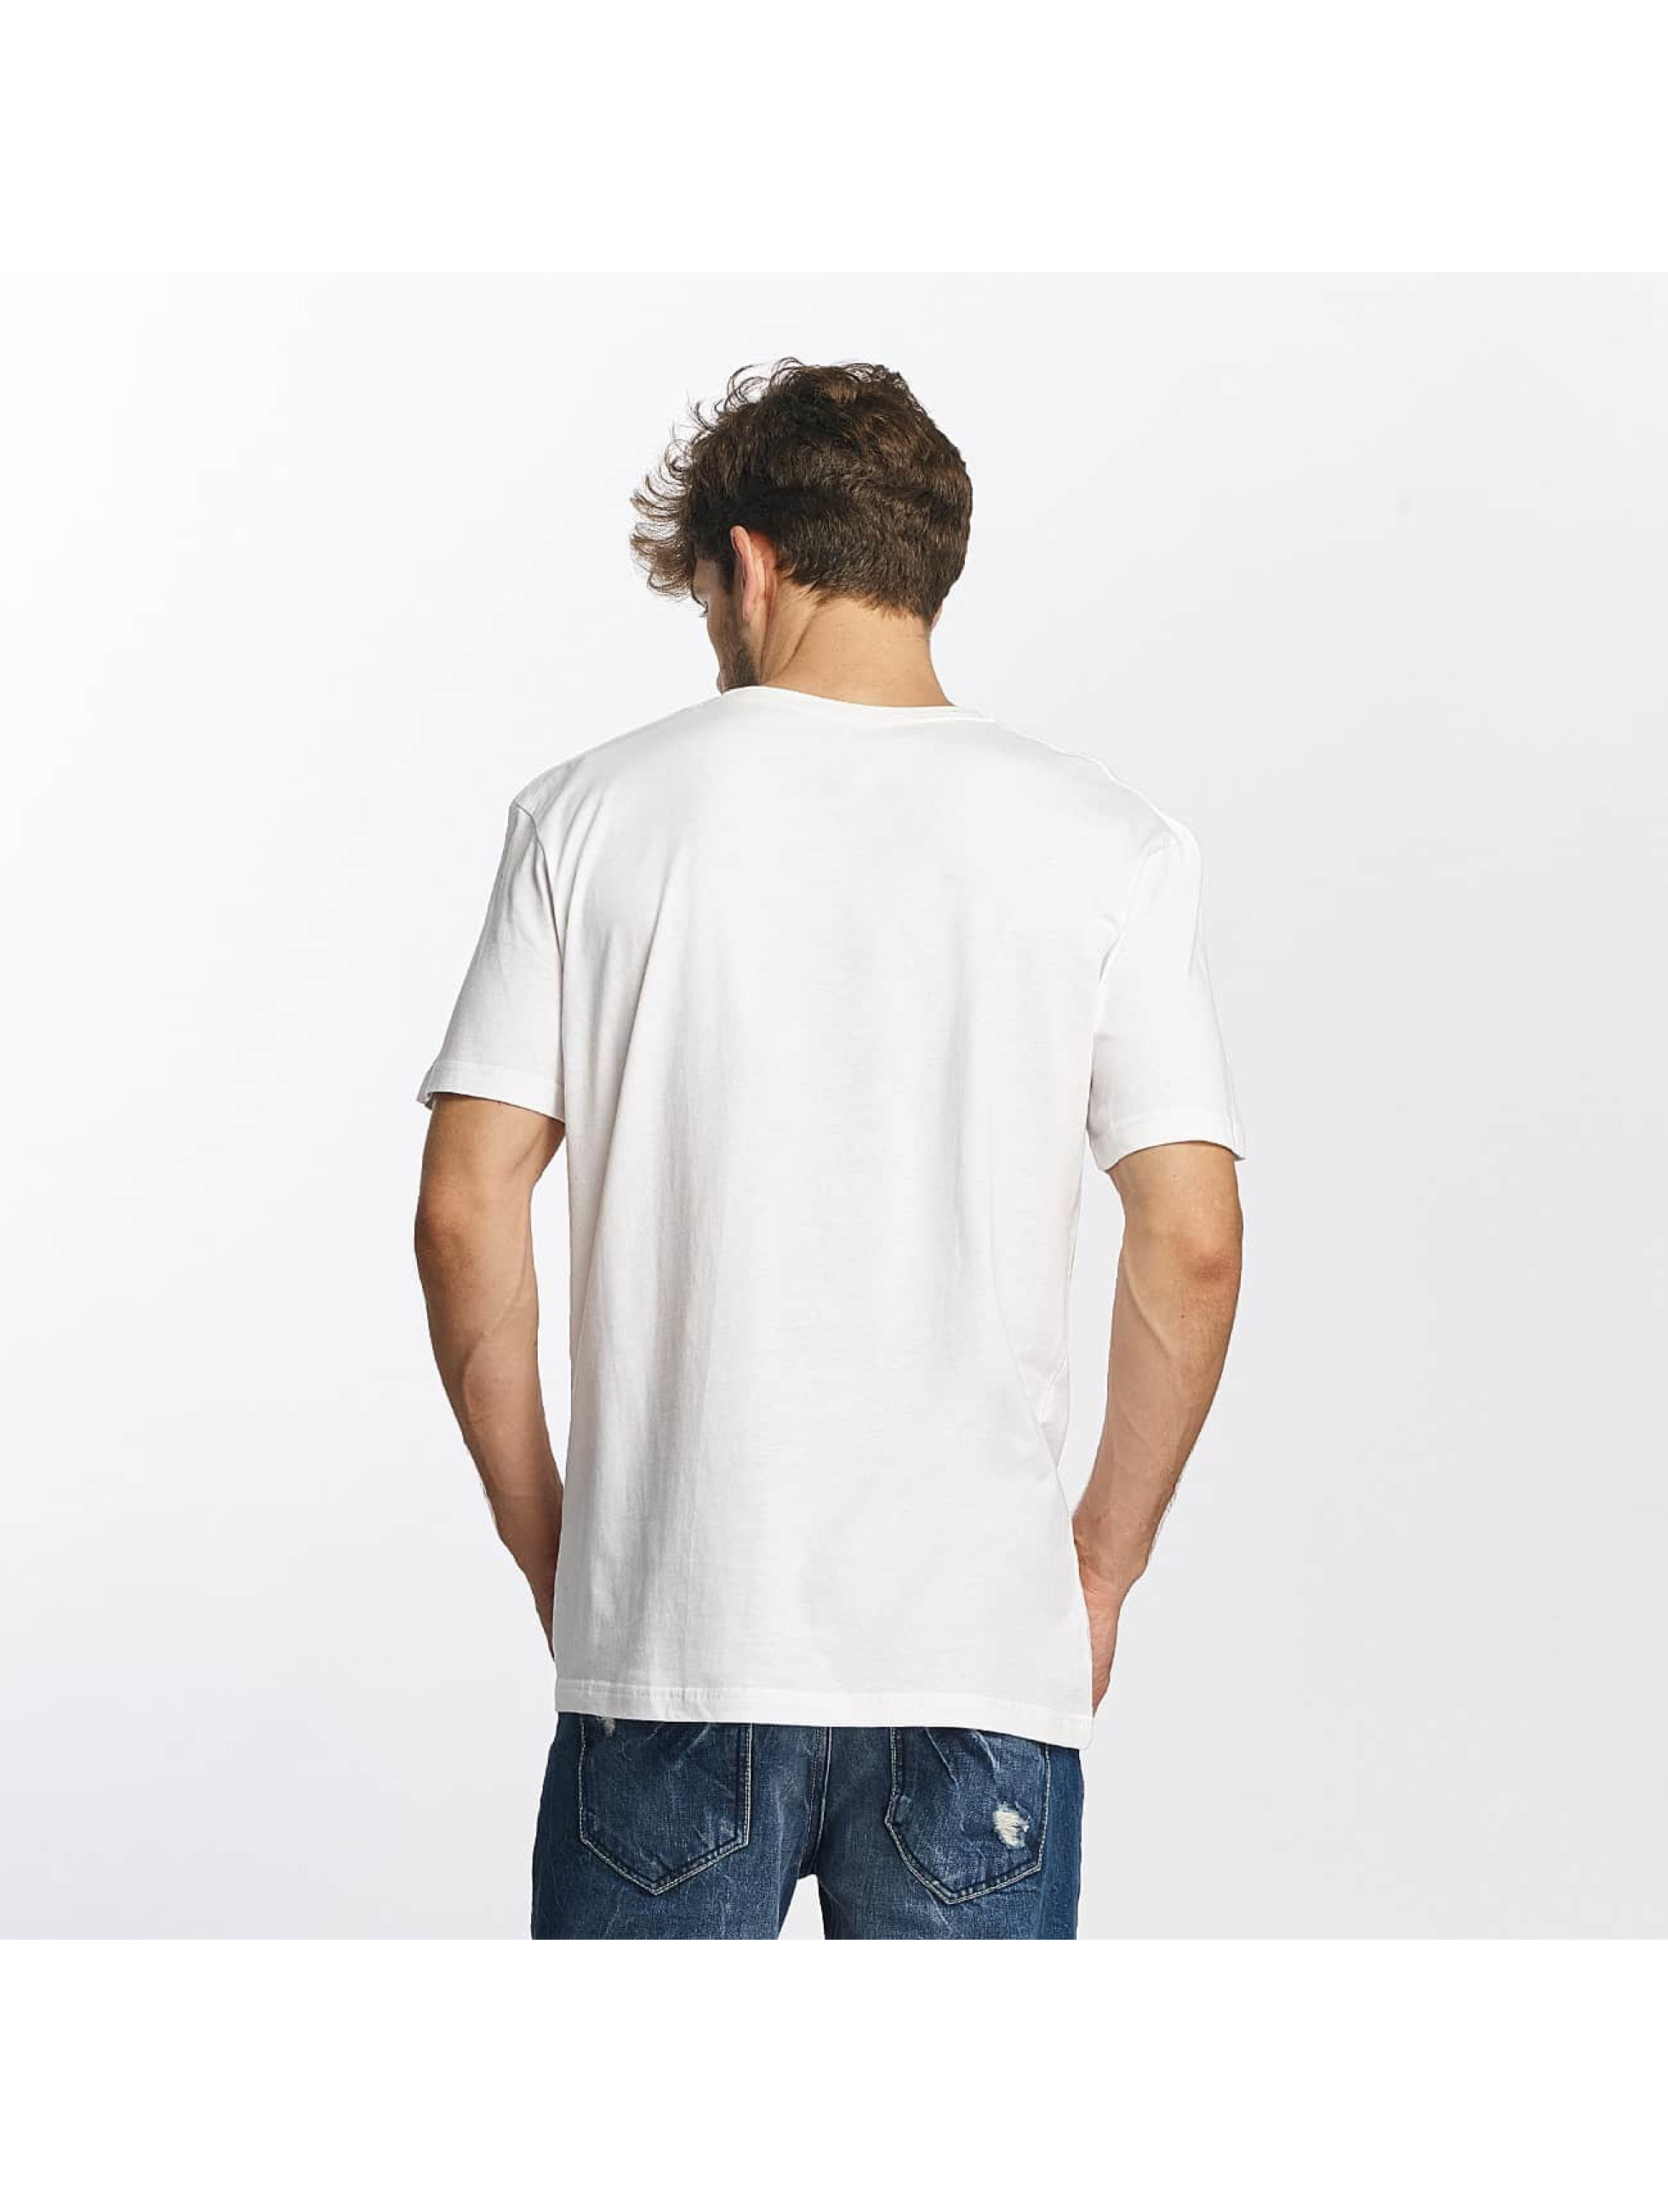 Quiksilver T-Shirt Classic Coast Lines weiß